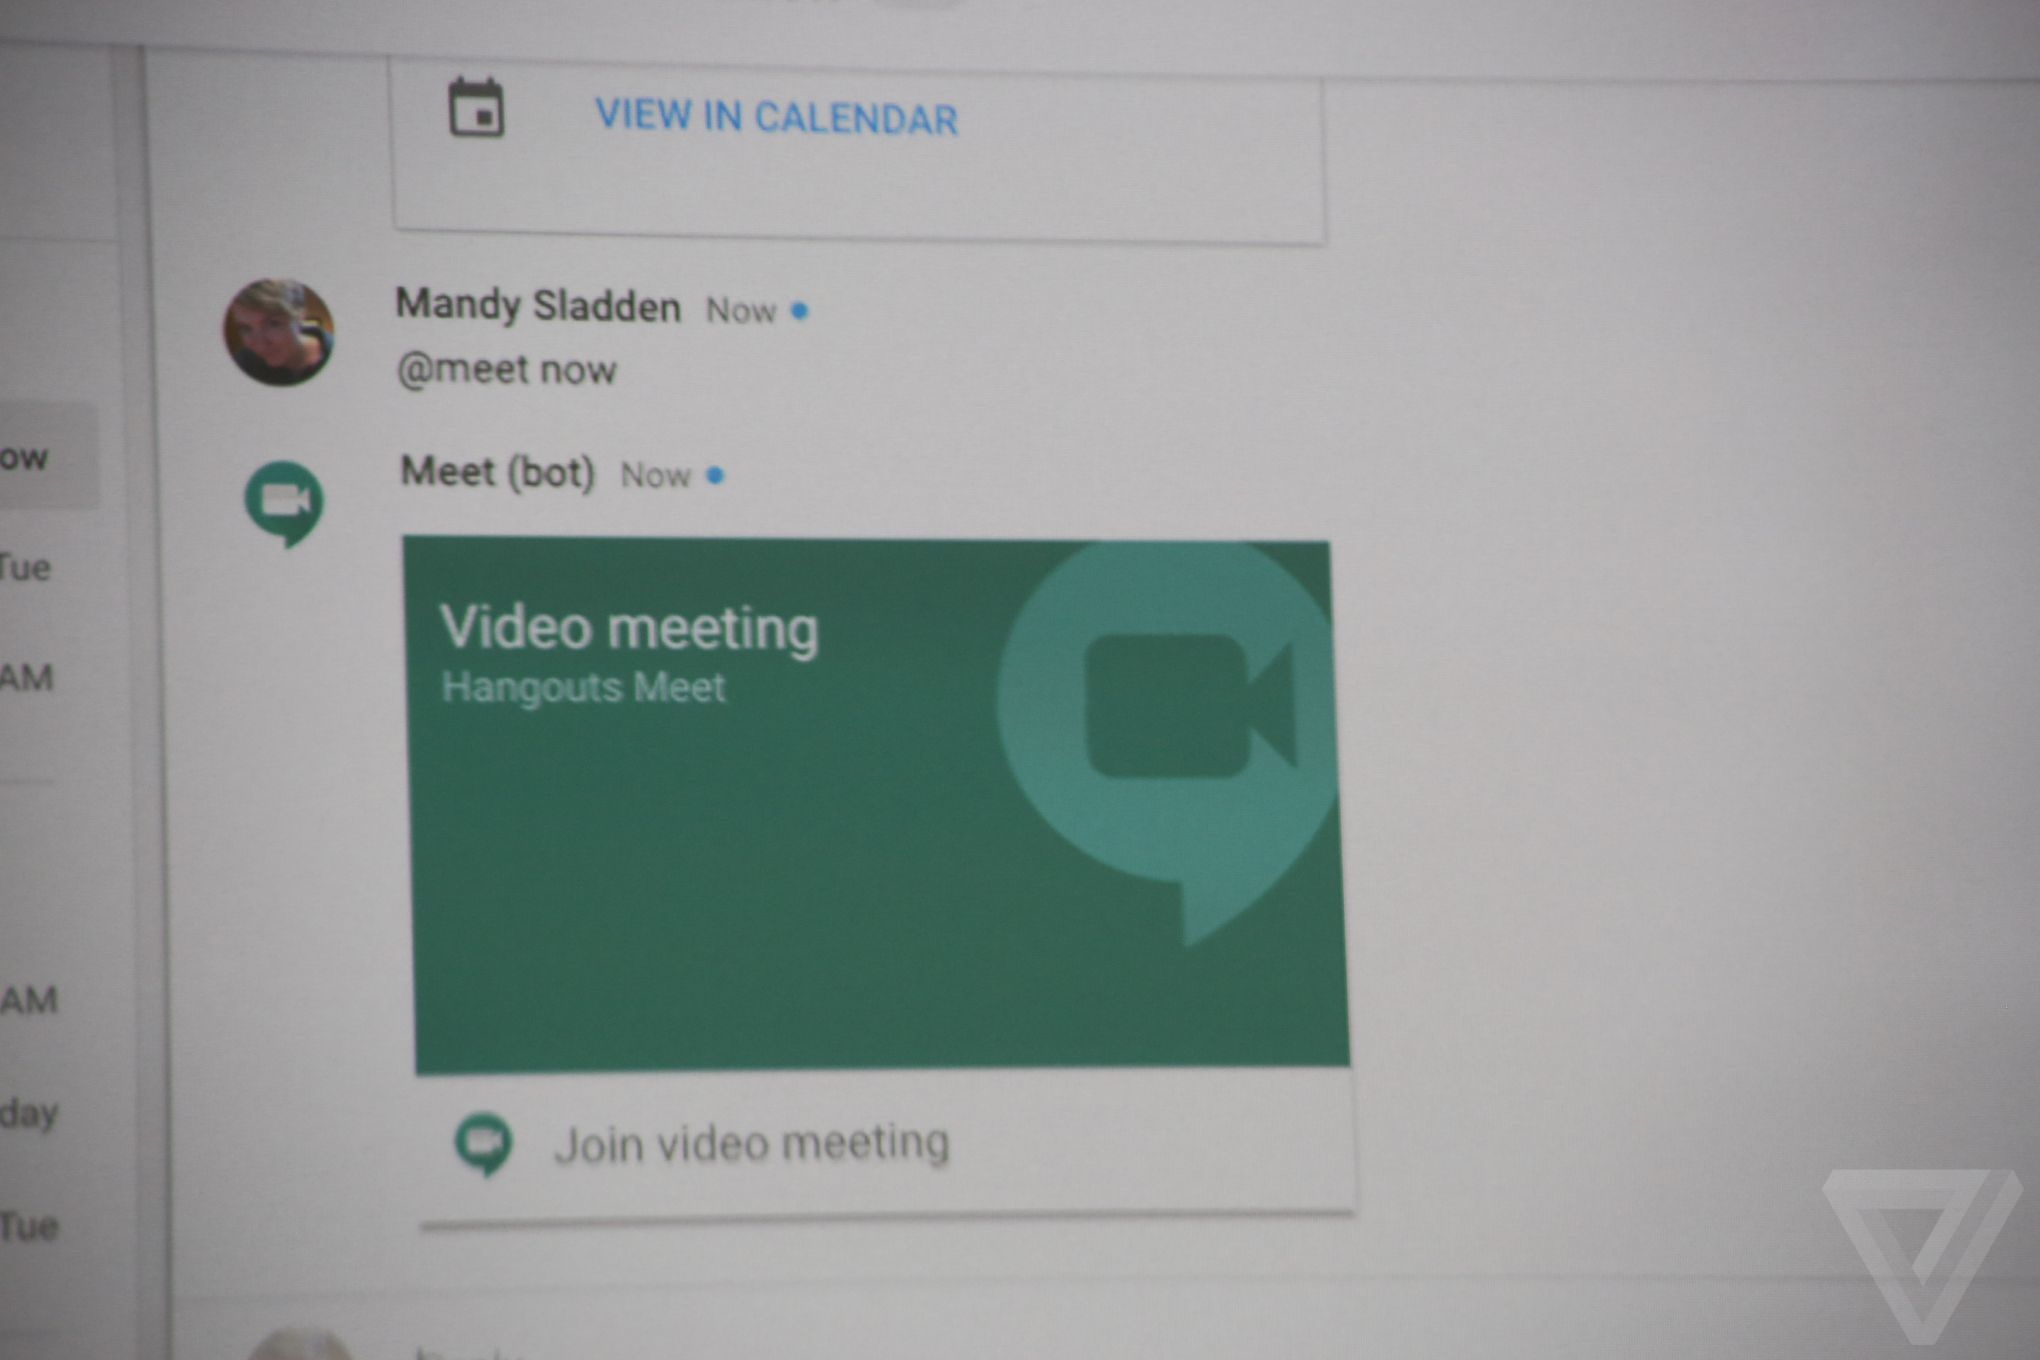 Google Hangouts is getting a major overhaul to take on Slack - The Verge